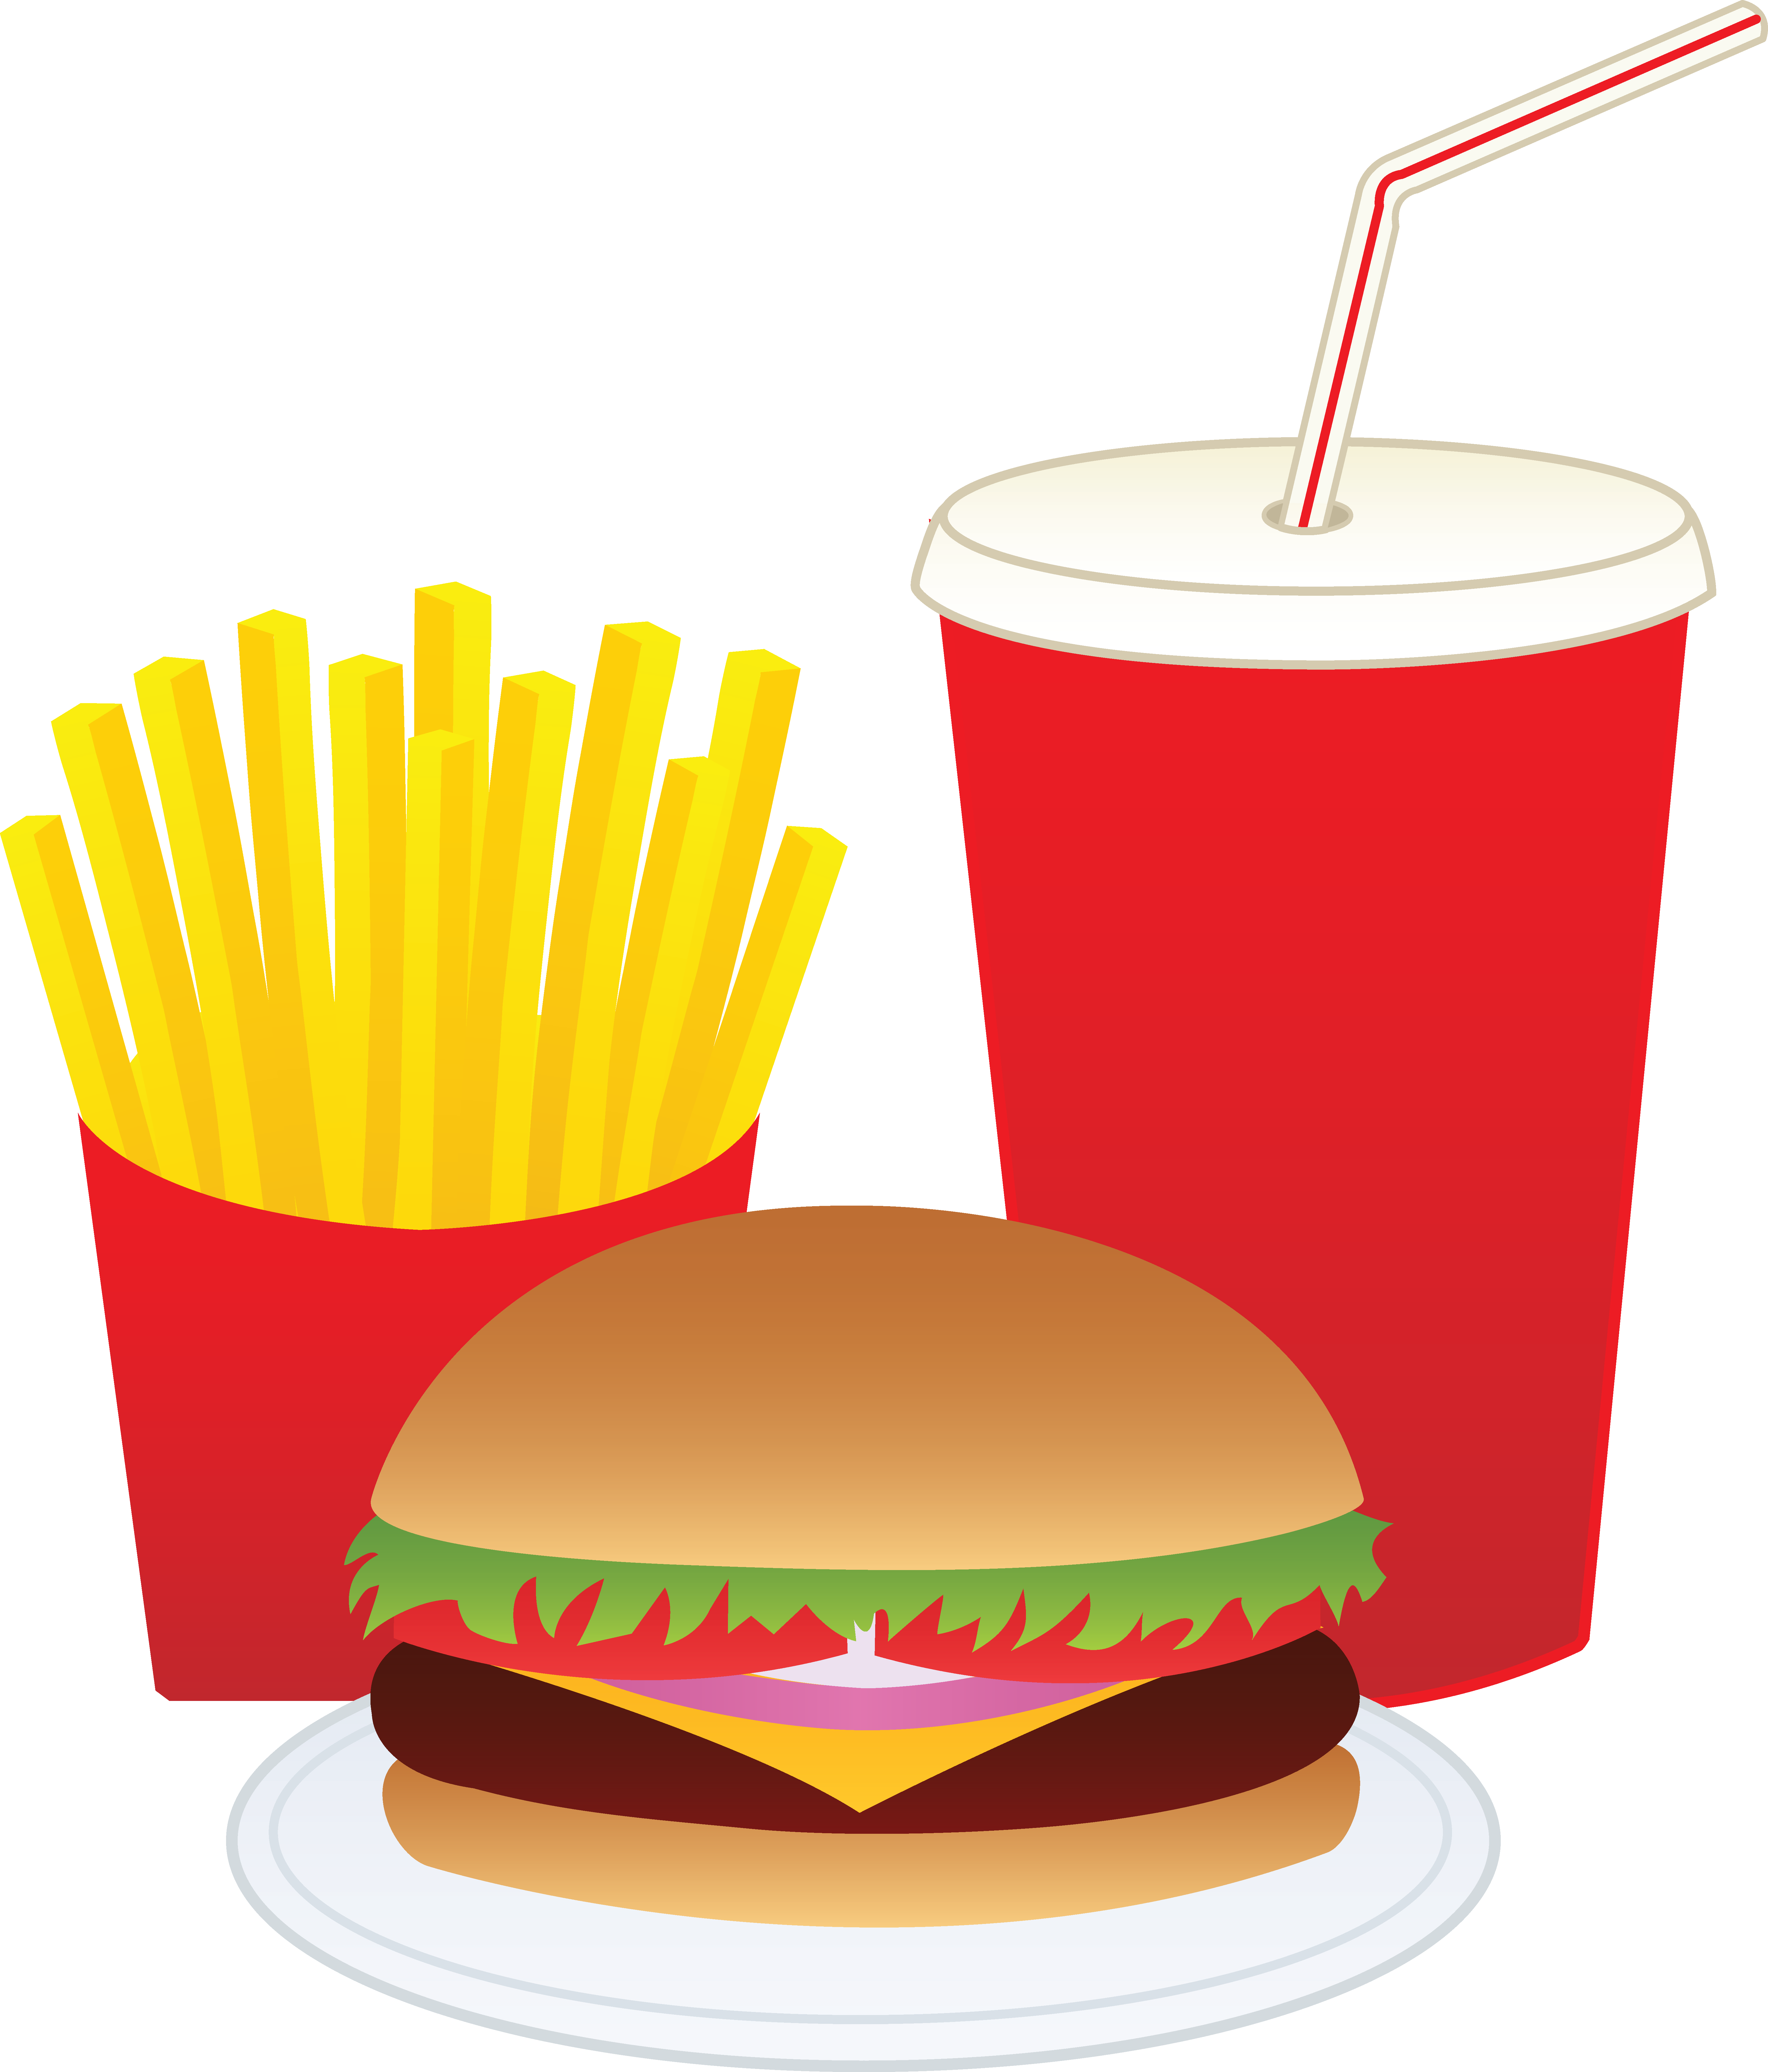 Free Burger Meal Cliparts, Download Free Clip Art, Free Clip.